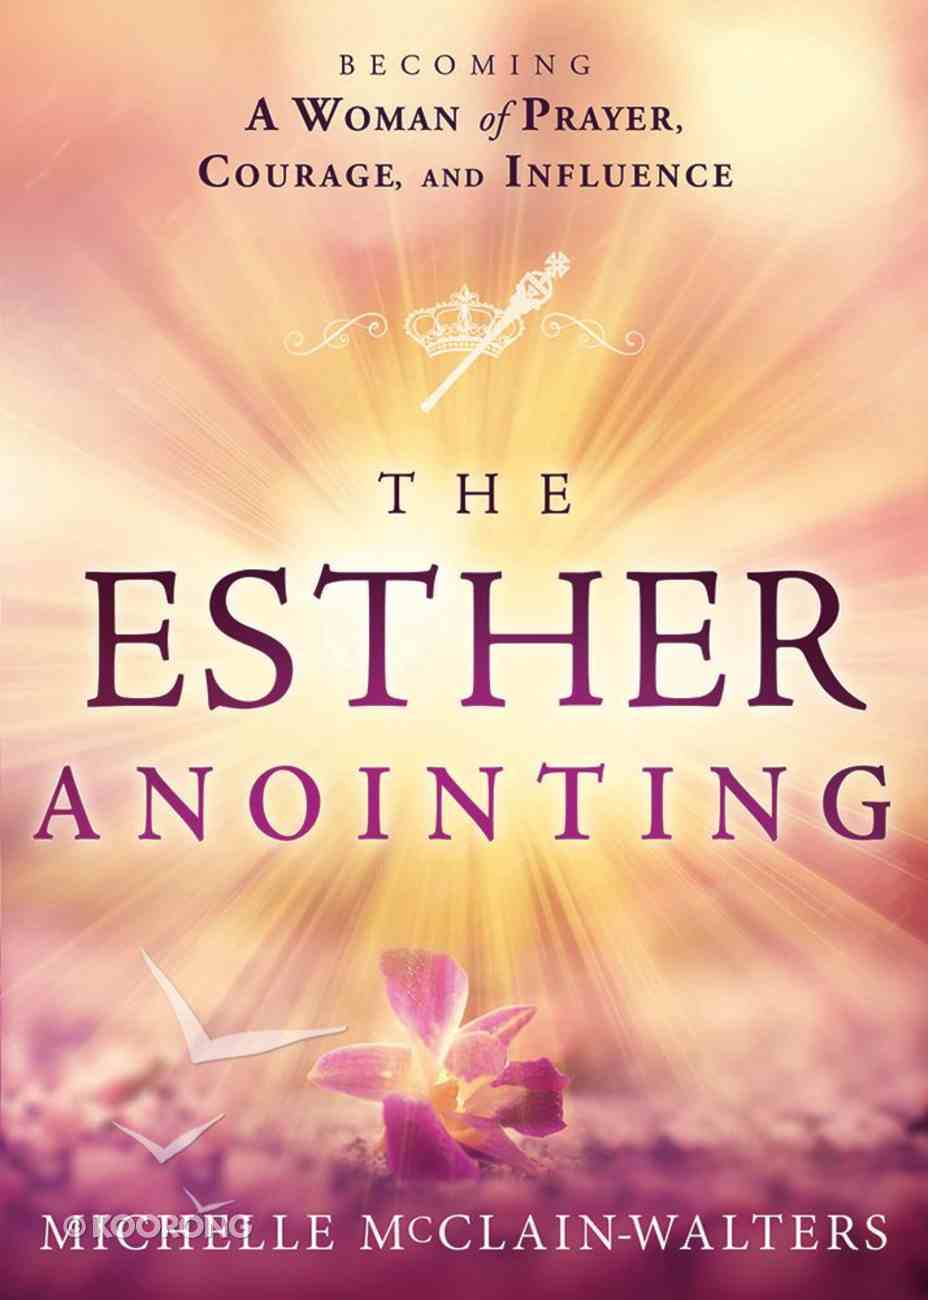 The Esther Anointing: Activating Your Divine Gifts to Make a Difference Paperback